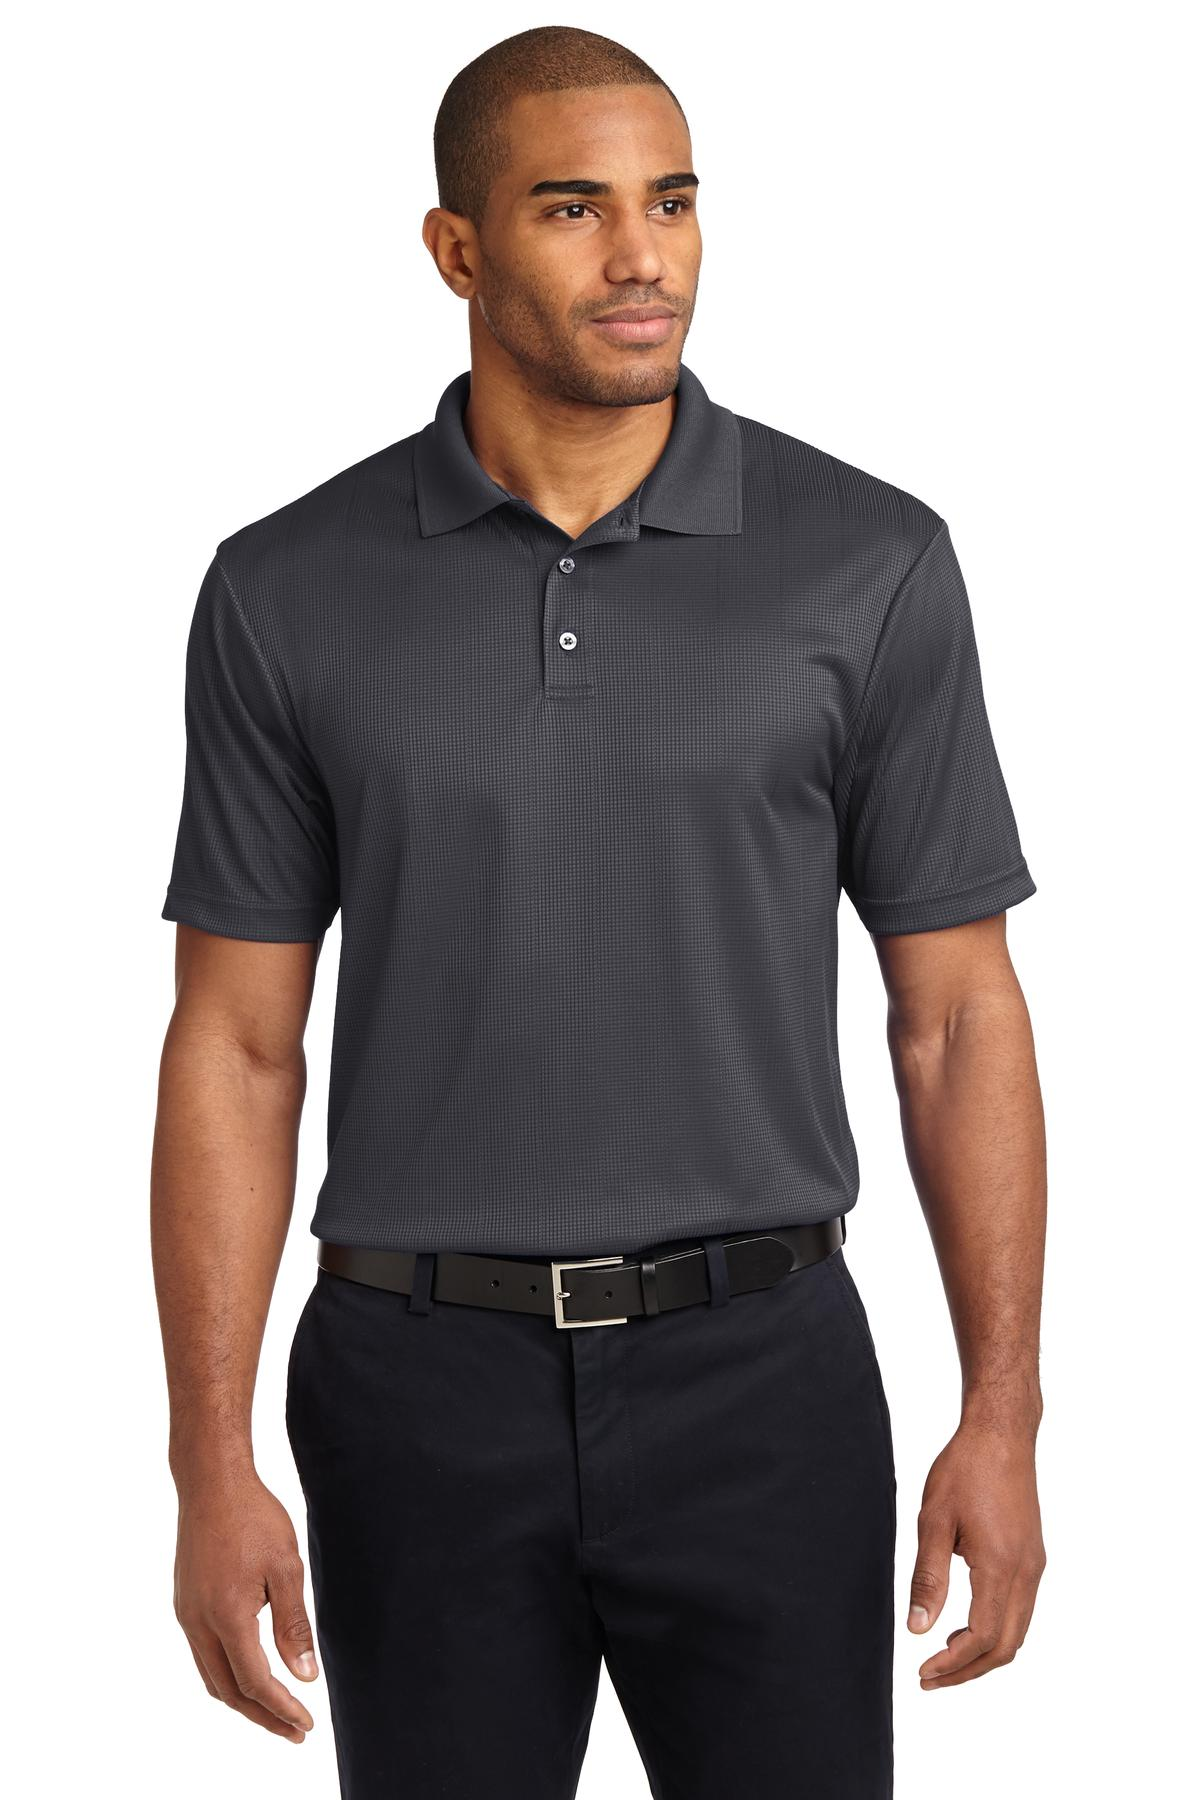 White Port Authority Silk Touch Performance Polo.